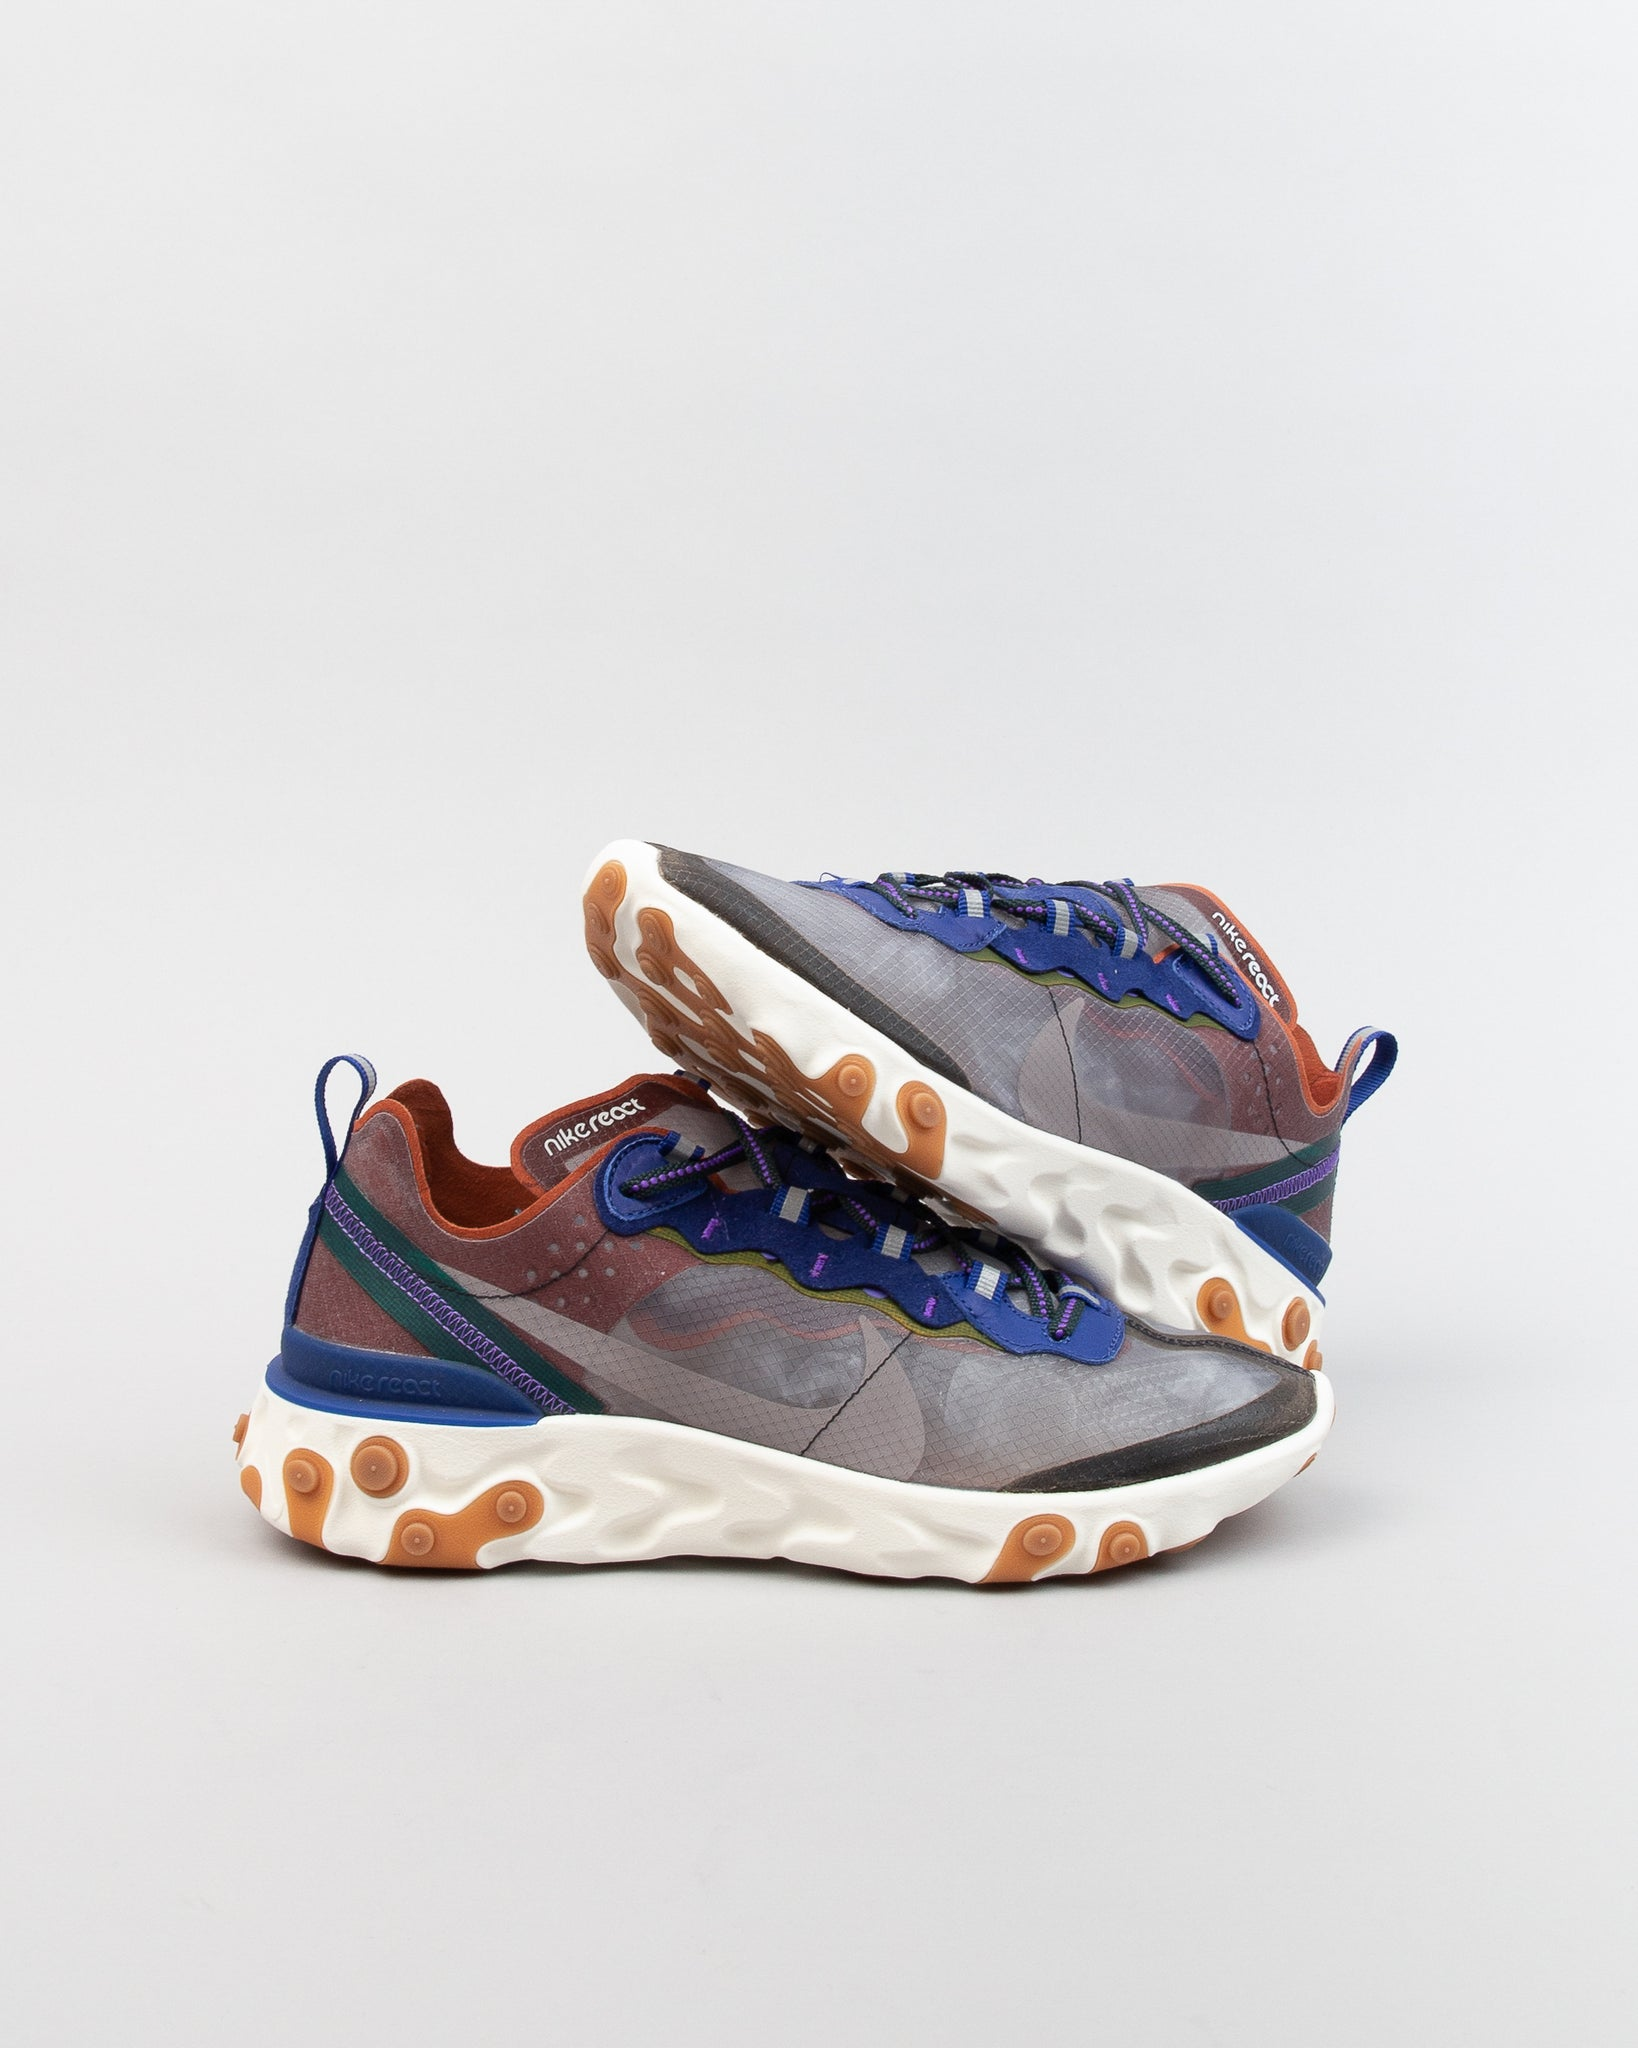 React Element 87 Dusty Peach/Atmosphere Grey